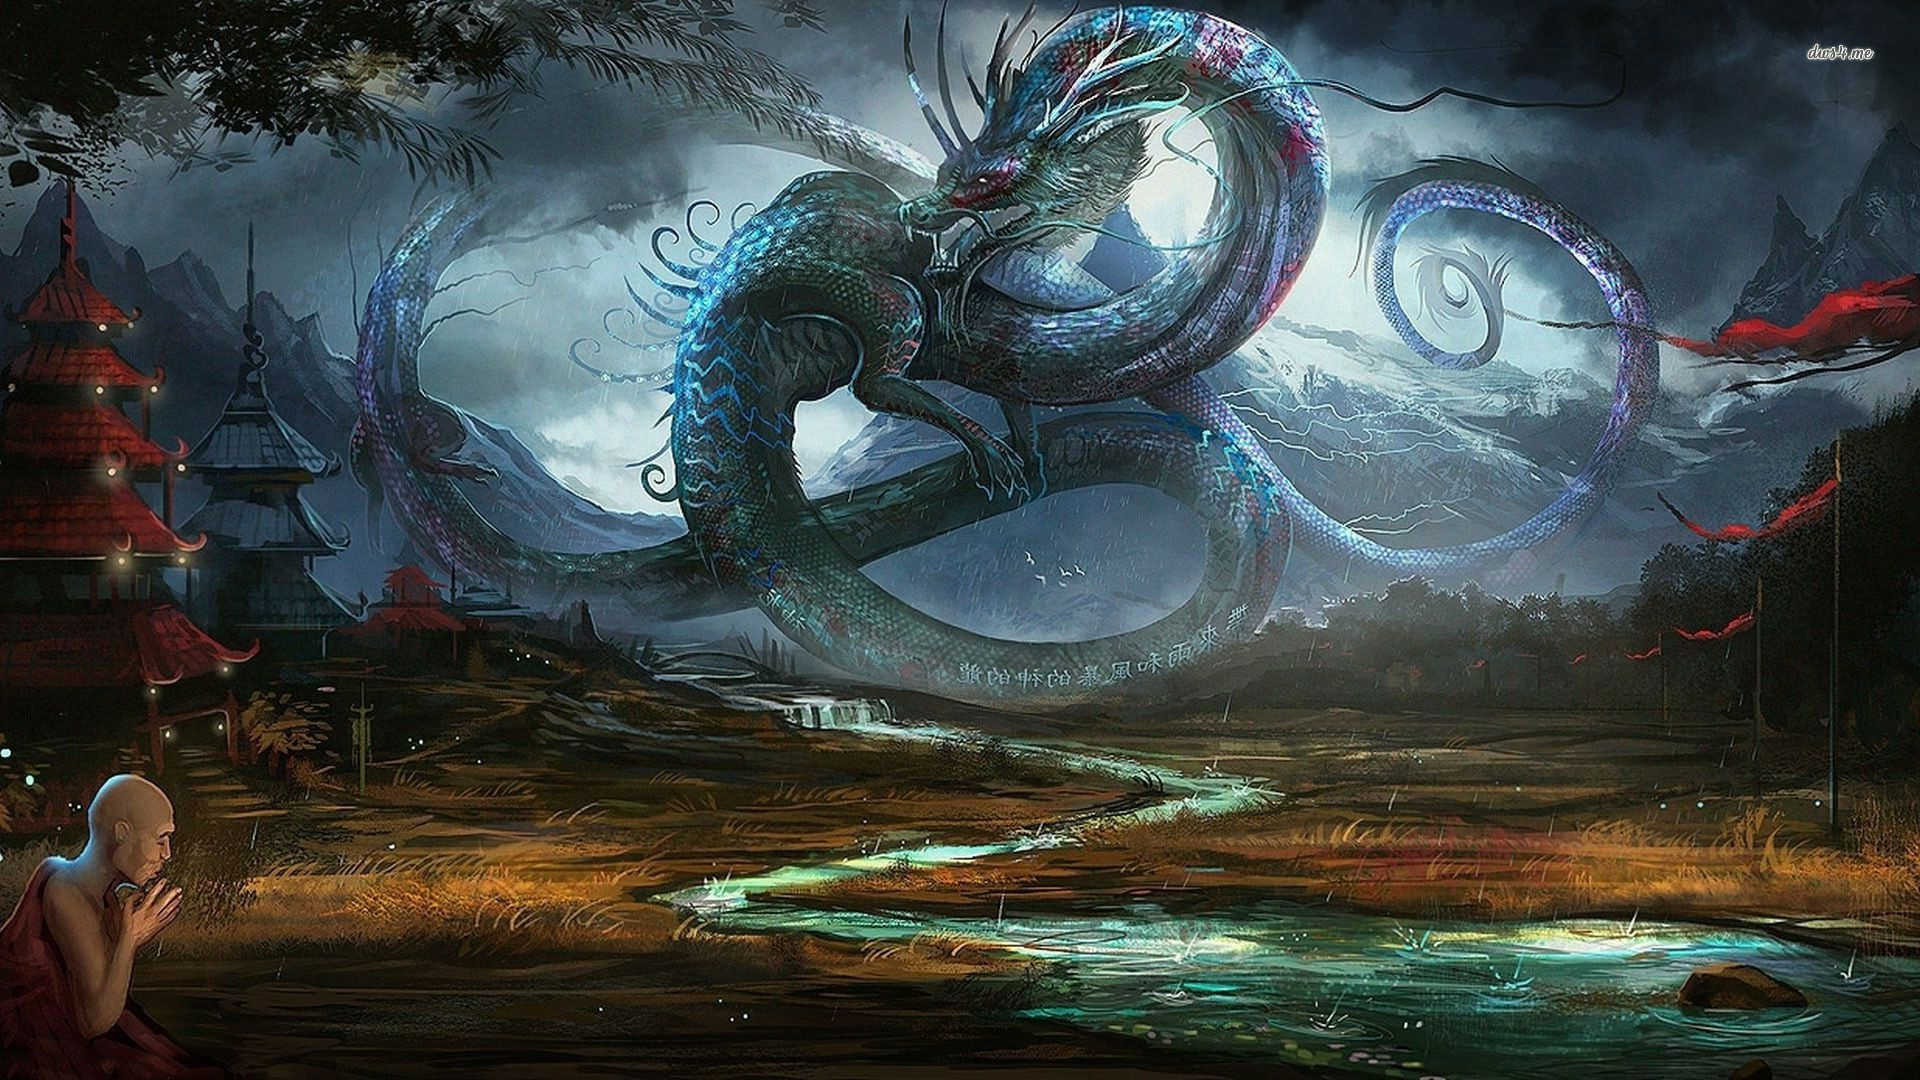 Dragon In Ancient Chinese Village Wallpaper Anime Wallpaper Dragon Pictures Art Wallpaper